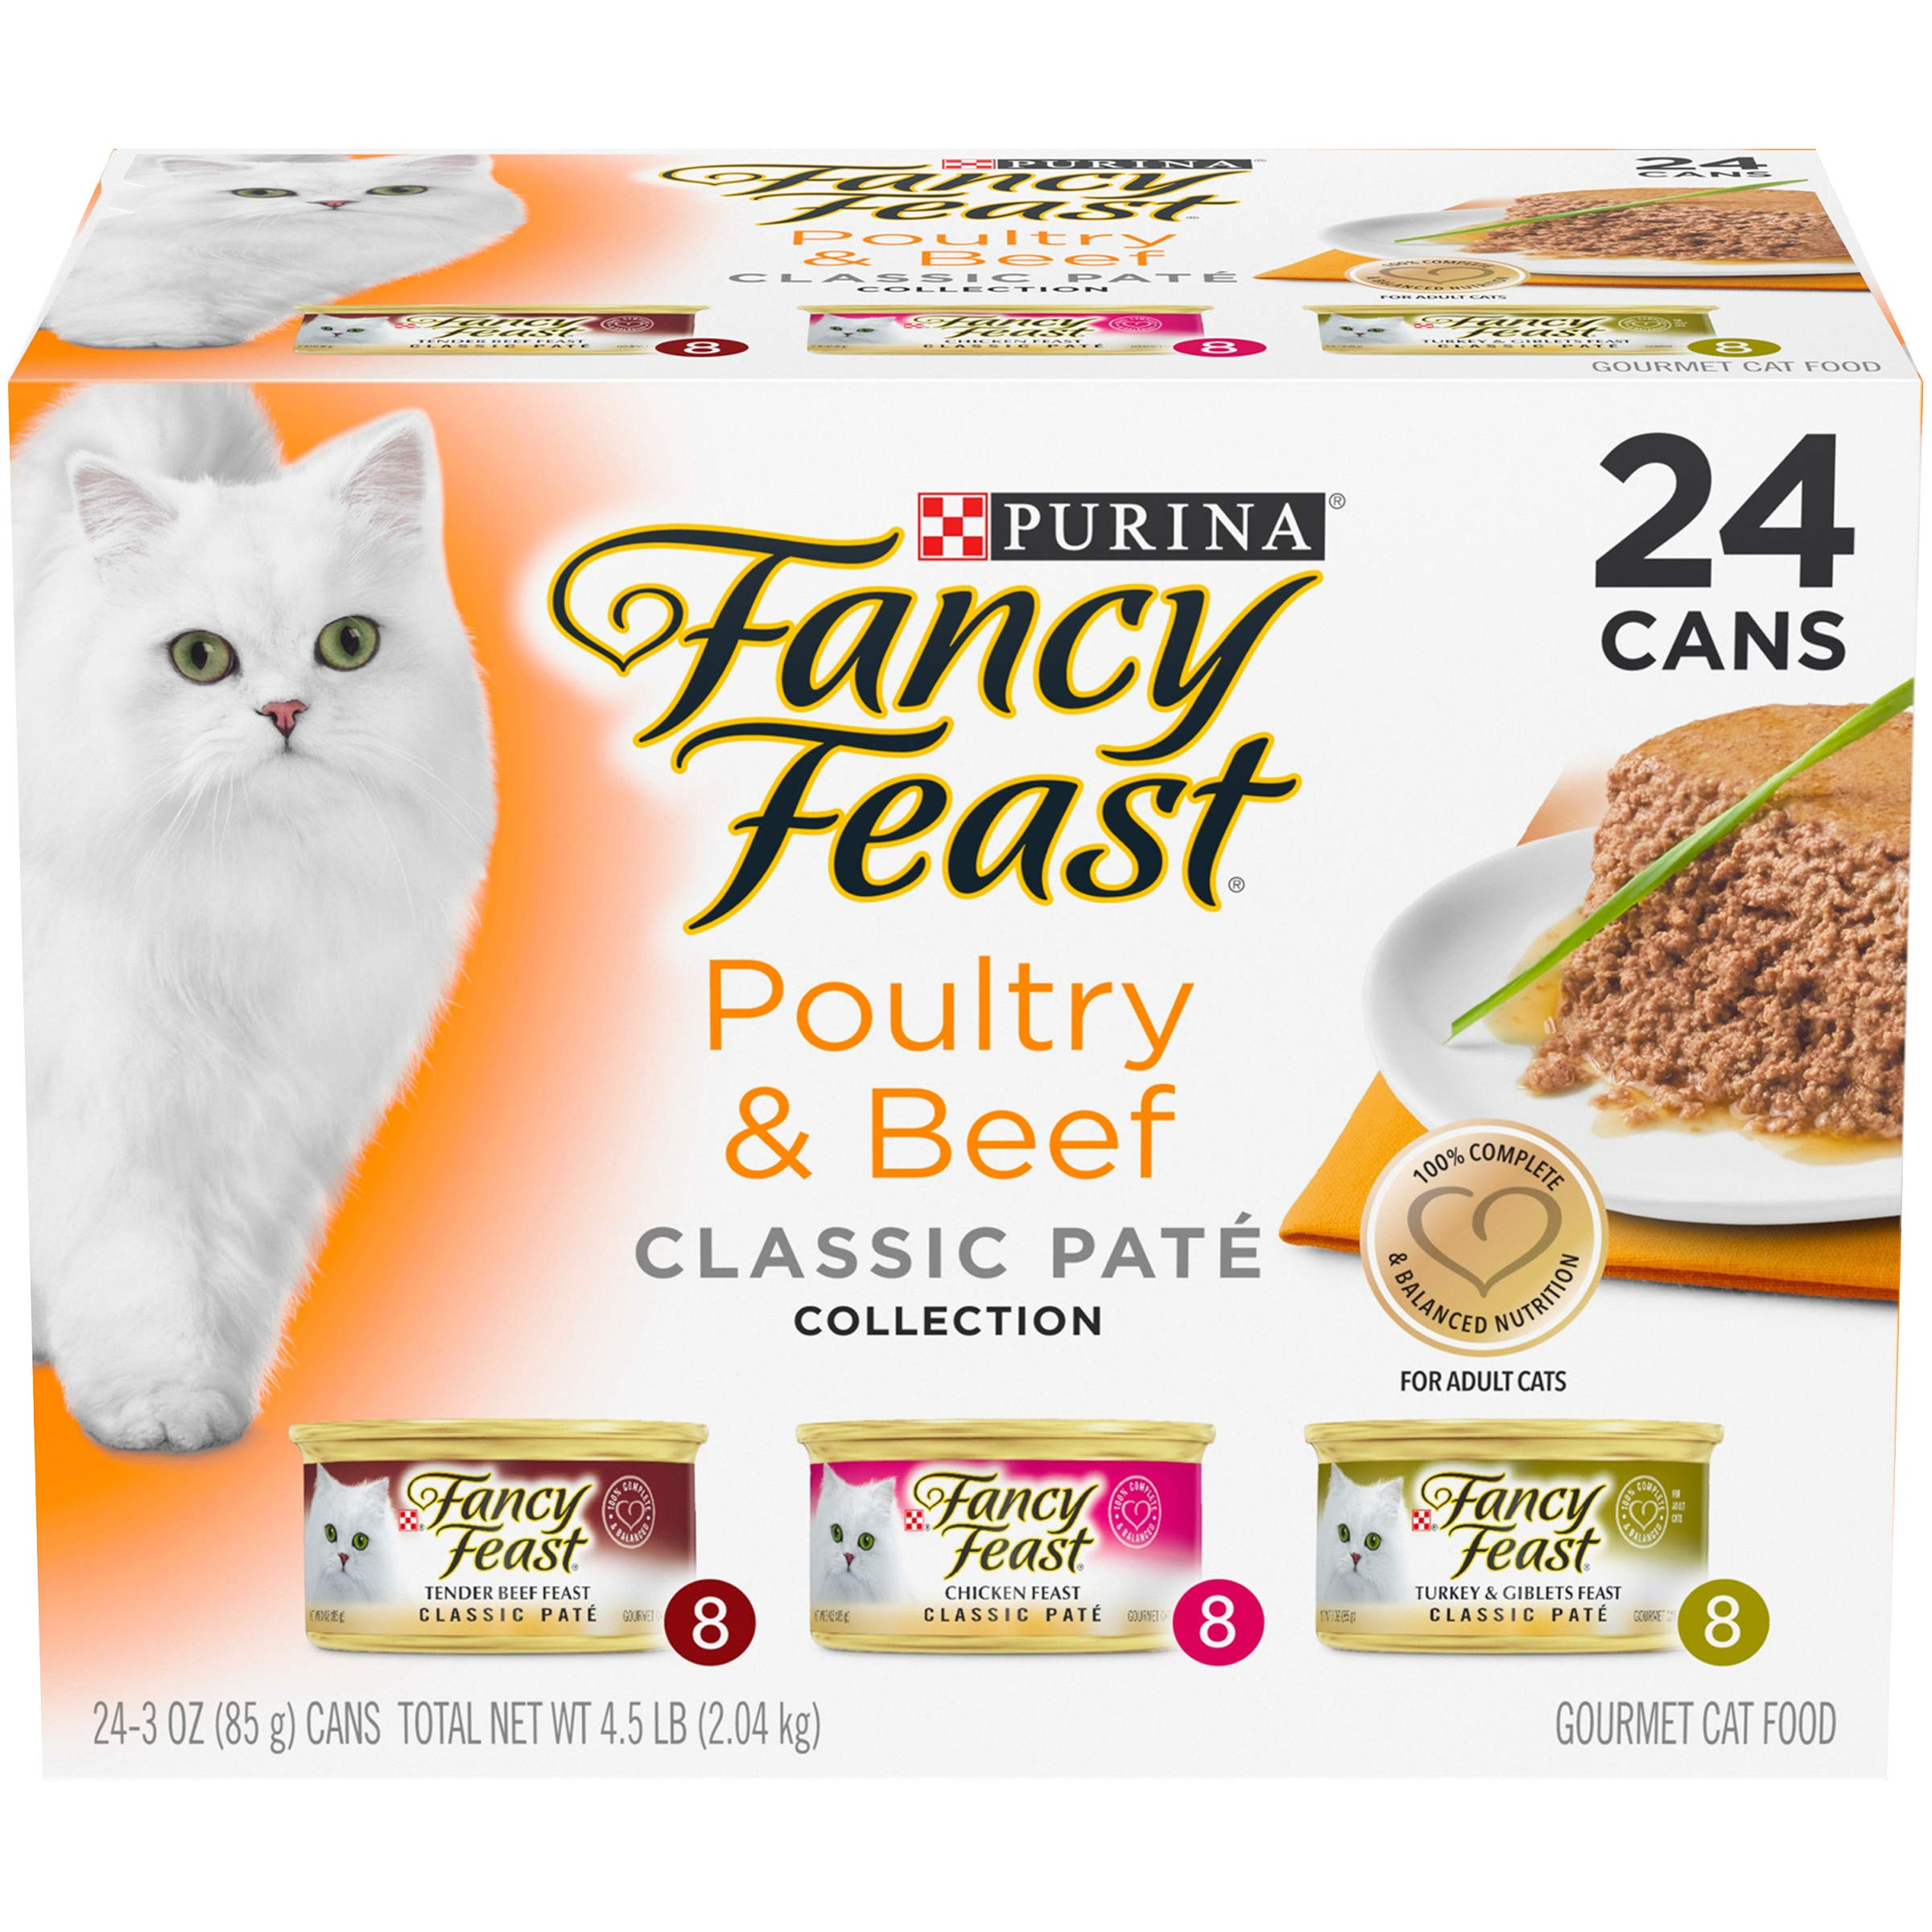 Purina Fancy Feast Grain Free Wet Cat Food Variety Pack Pate, Poultry & Beef Collection - (24) 3 oz. Cans